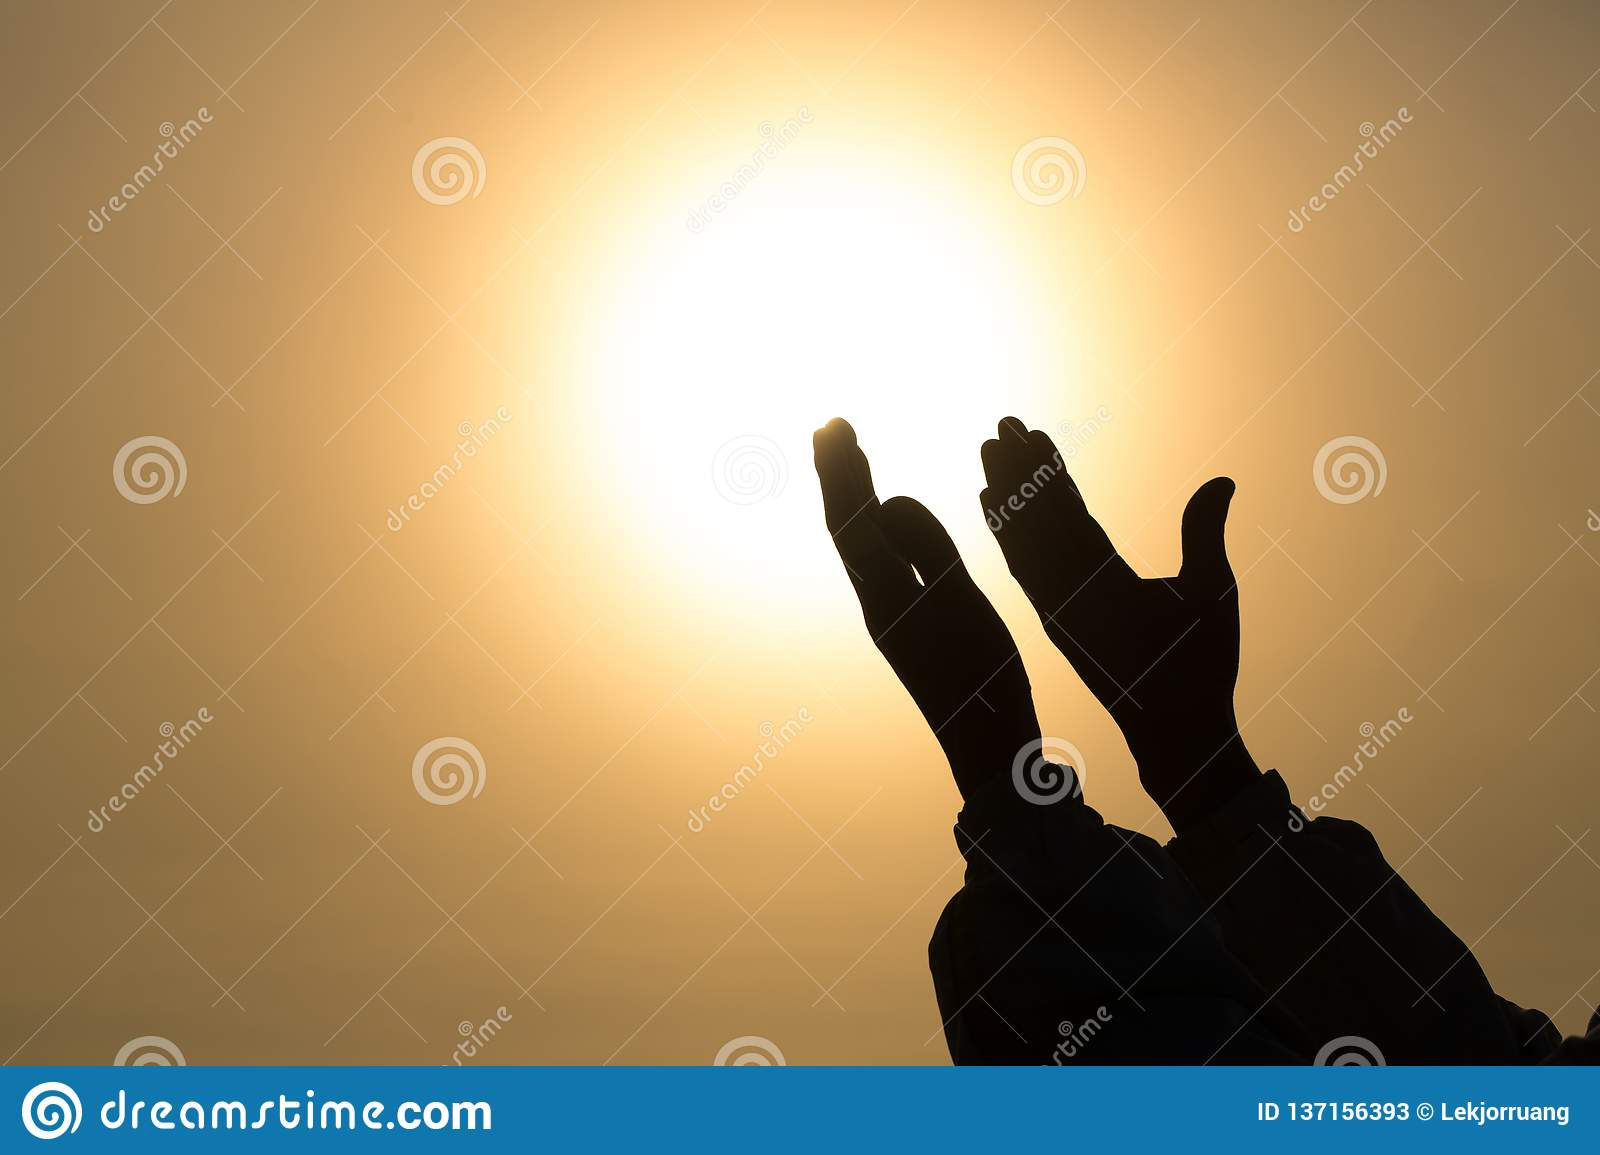 Christian woman hands praying to god Woman Pray for god blessing to wishing have a better life. begging for forgiveness and